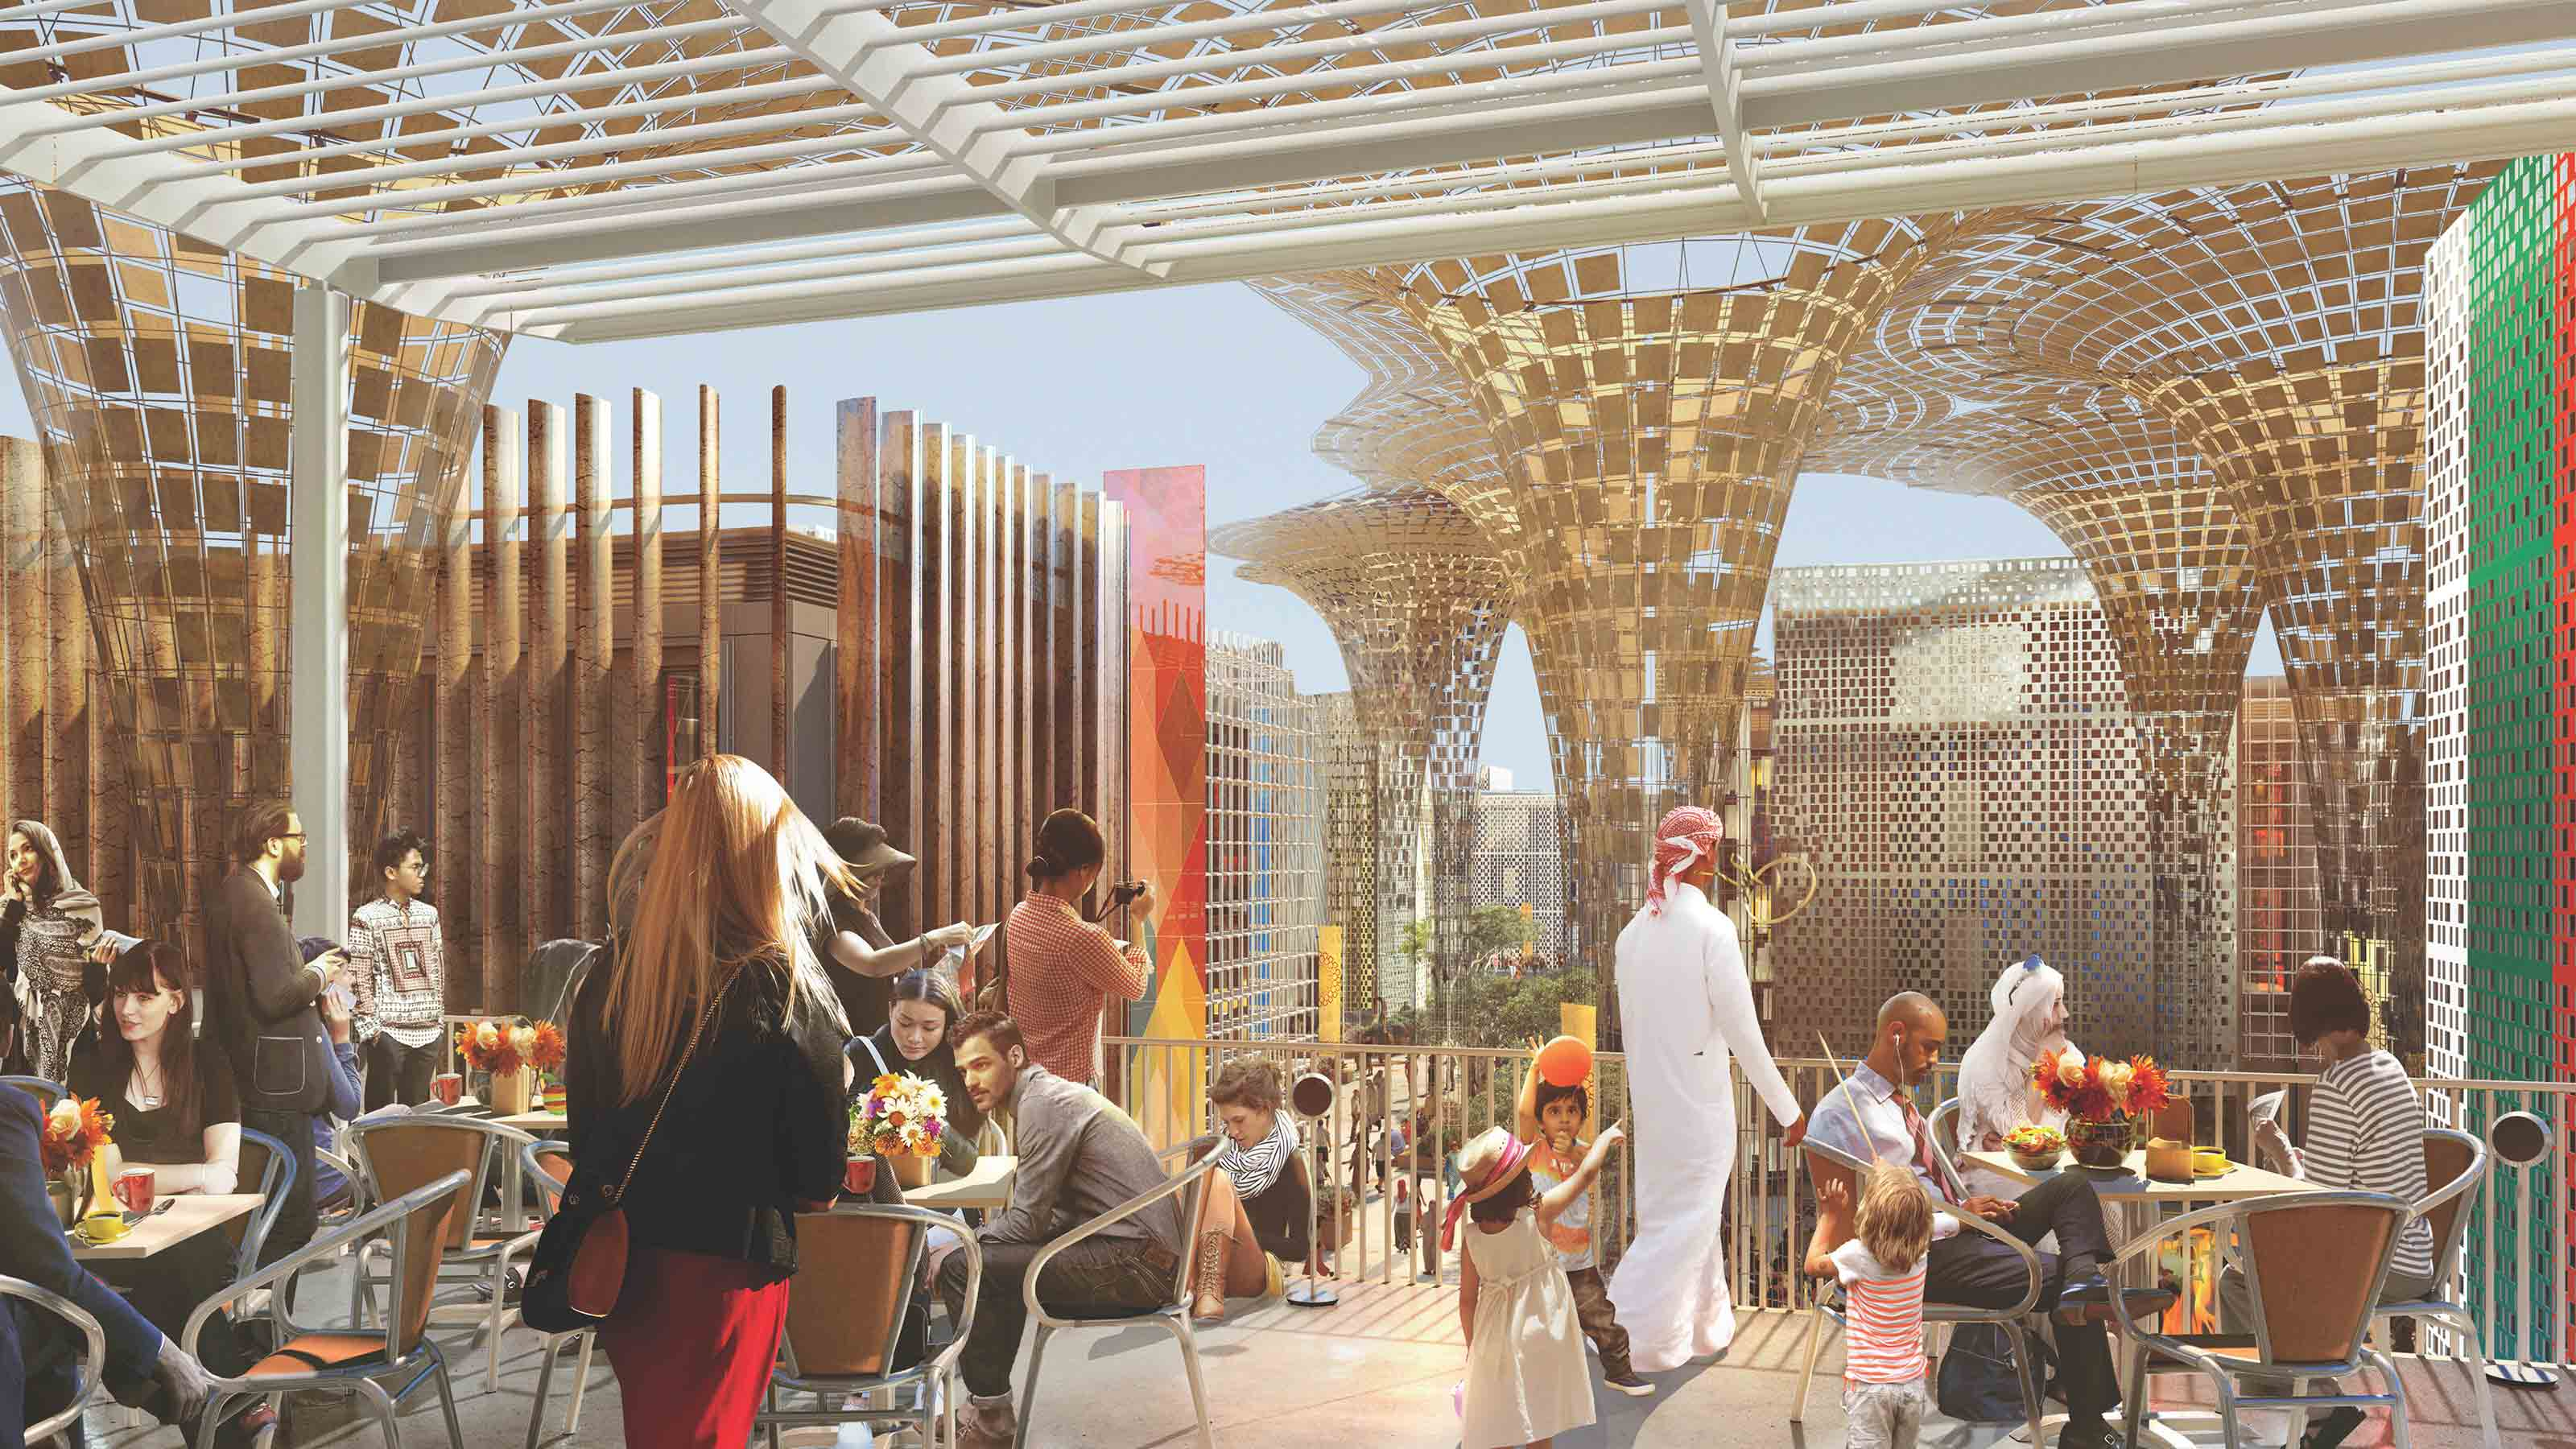 What Happens After Expo 2020?